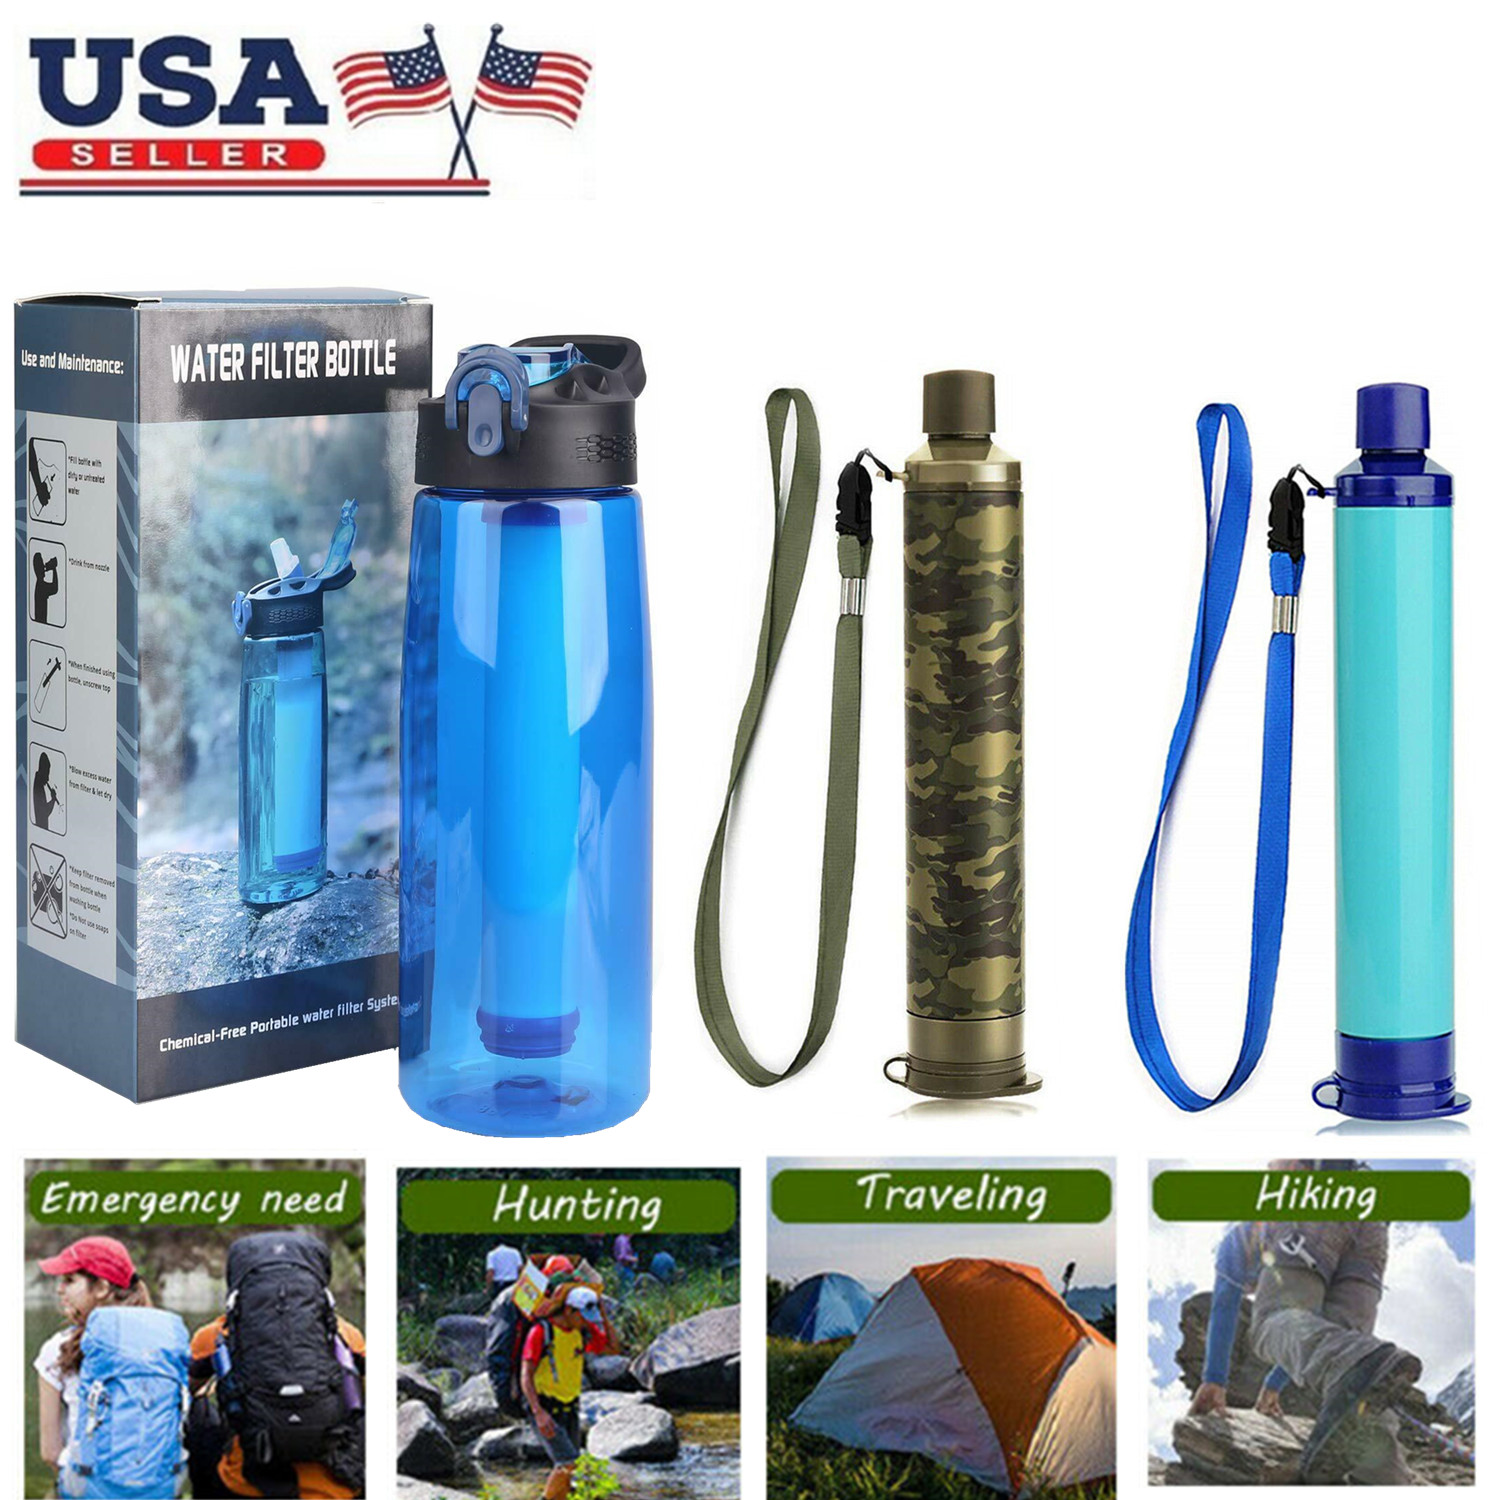 Survival Water Filter Straw Purifier Filtration Bottle Travel Camping Emergency